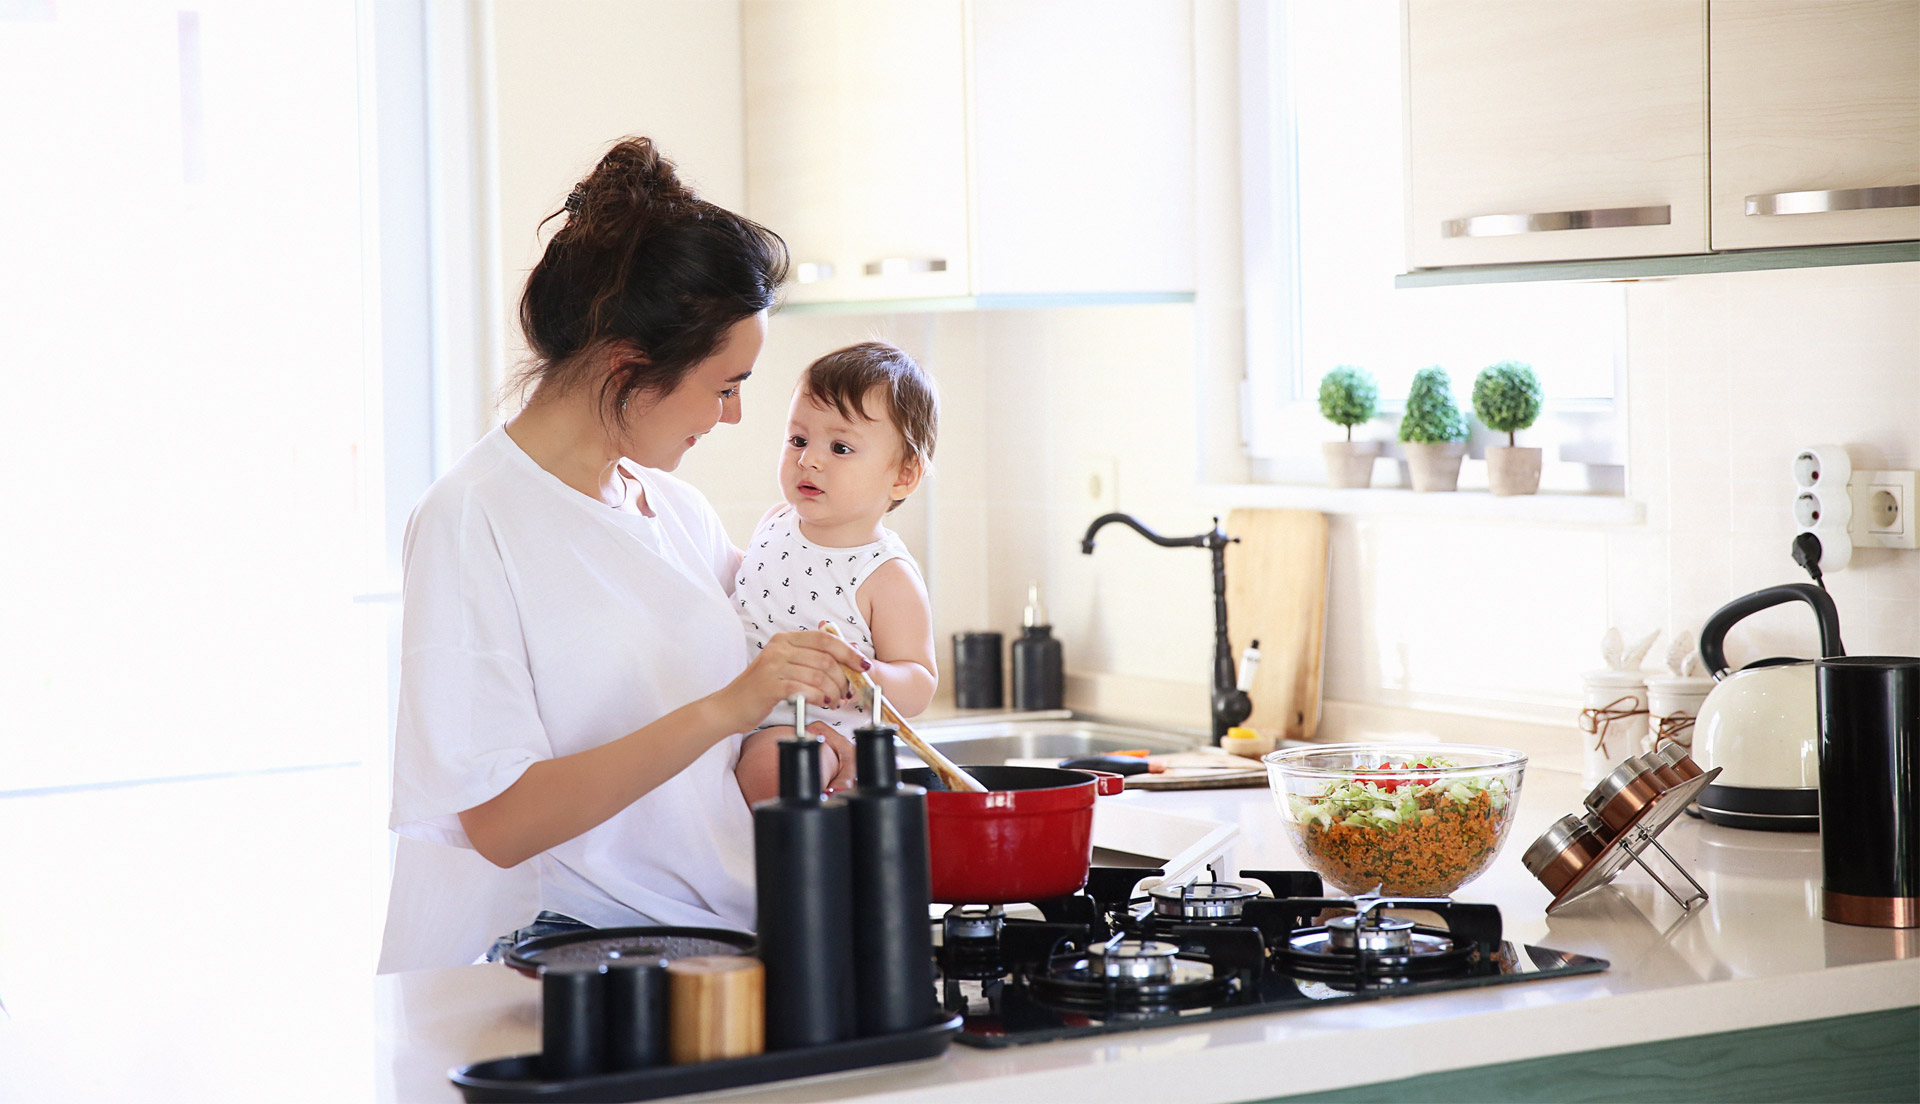 A mother holding a toddler and cooking food